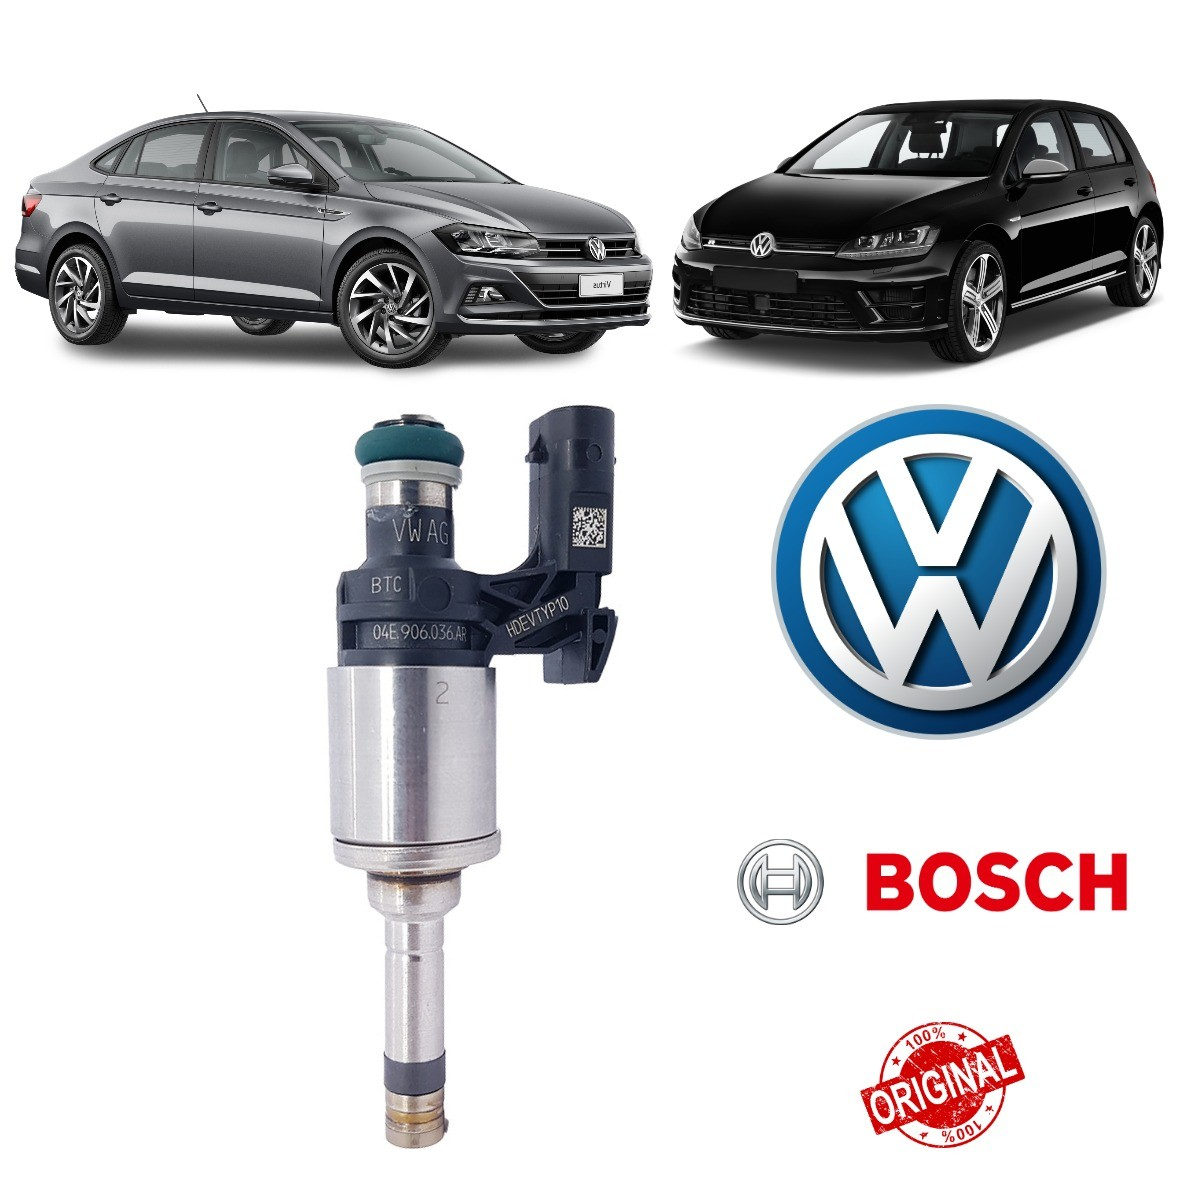 Bico Injetor Polo / Virtus / Golf 04E906036AR Original - Bosch